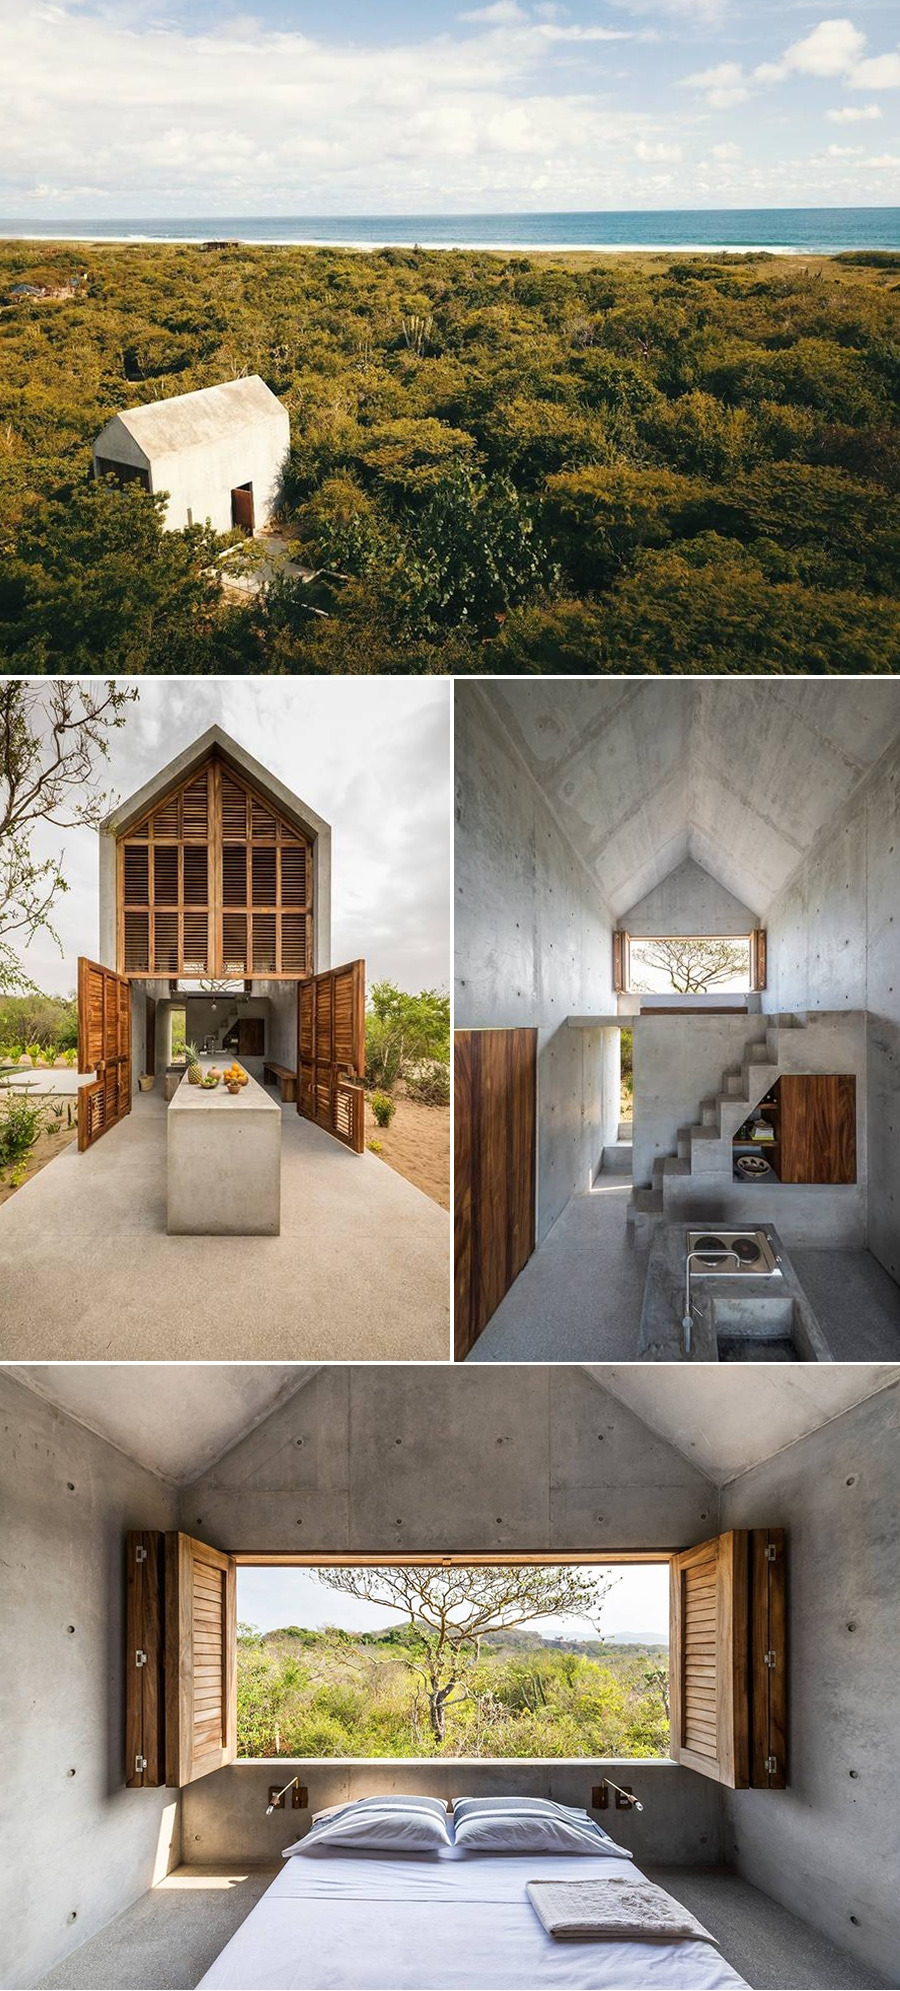 Images Of Most Beautiful Bungalows Best Architecture Elegant the Most Beautiful and Unique Airbnbs to Add to Your 2018